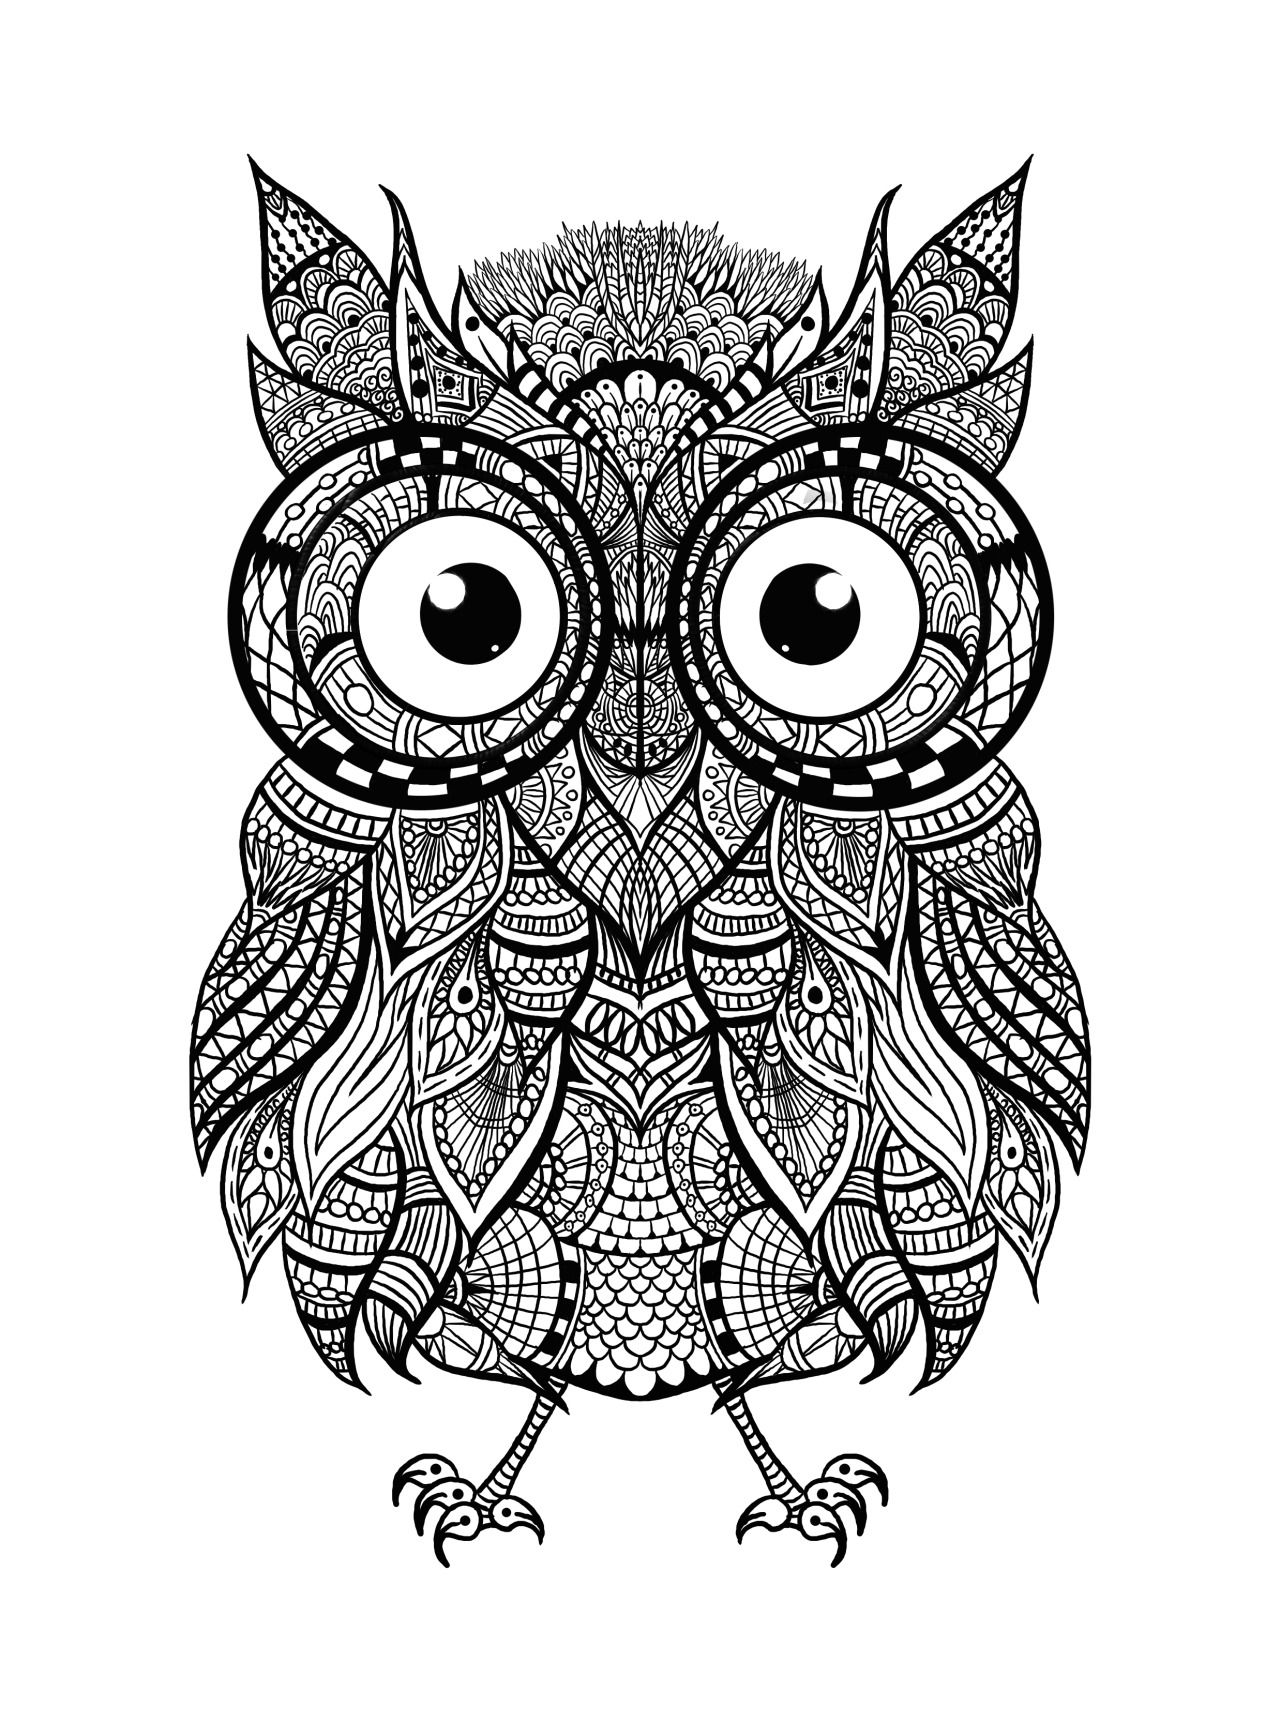 Hey everyone! Check out this awesome intricate owl for